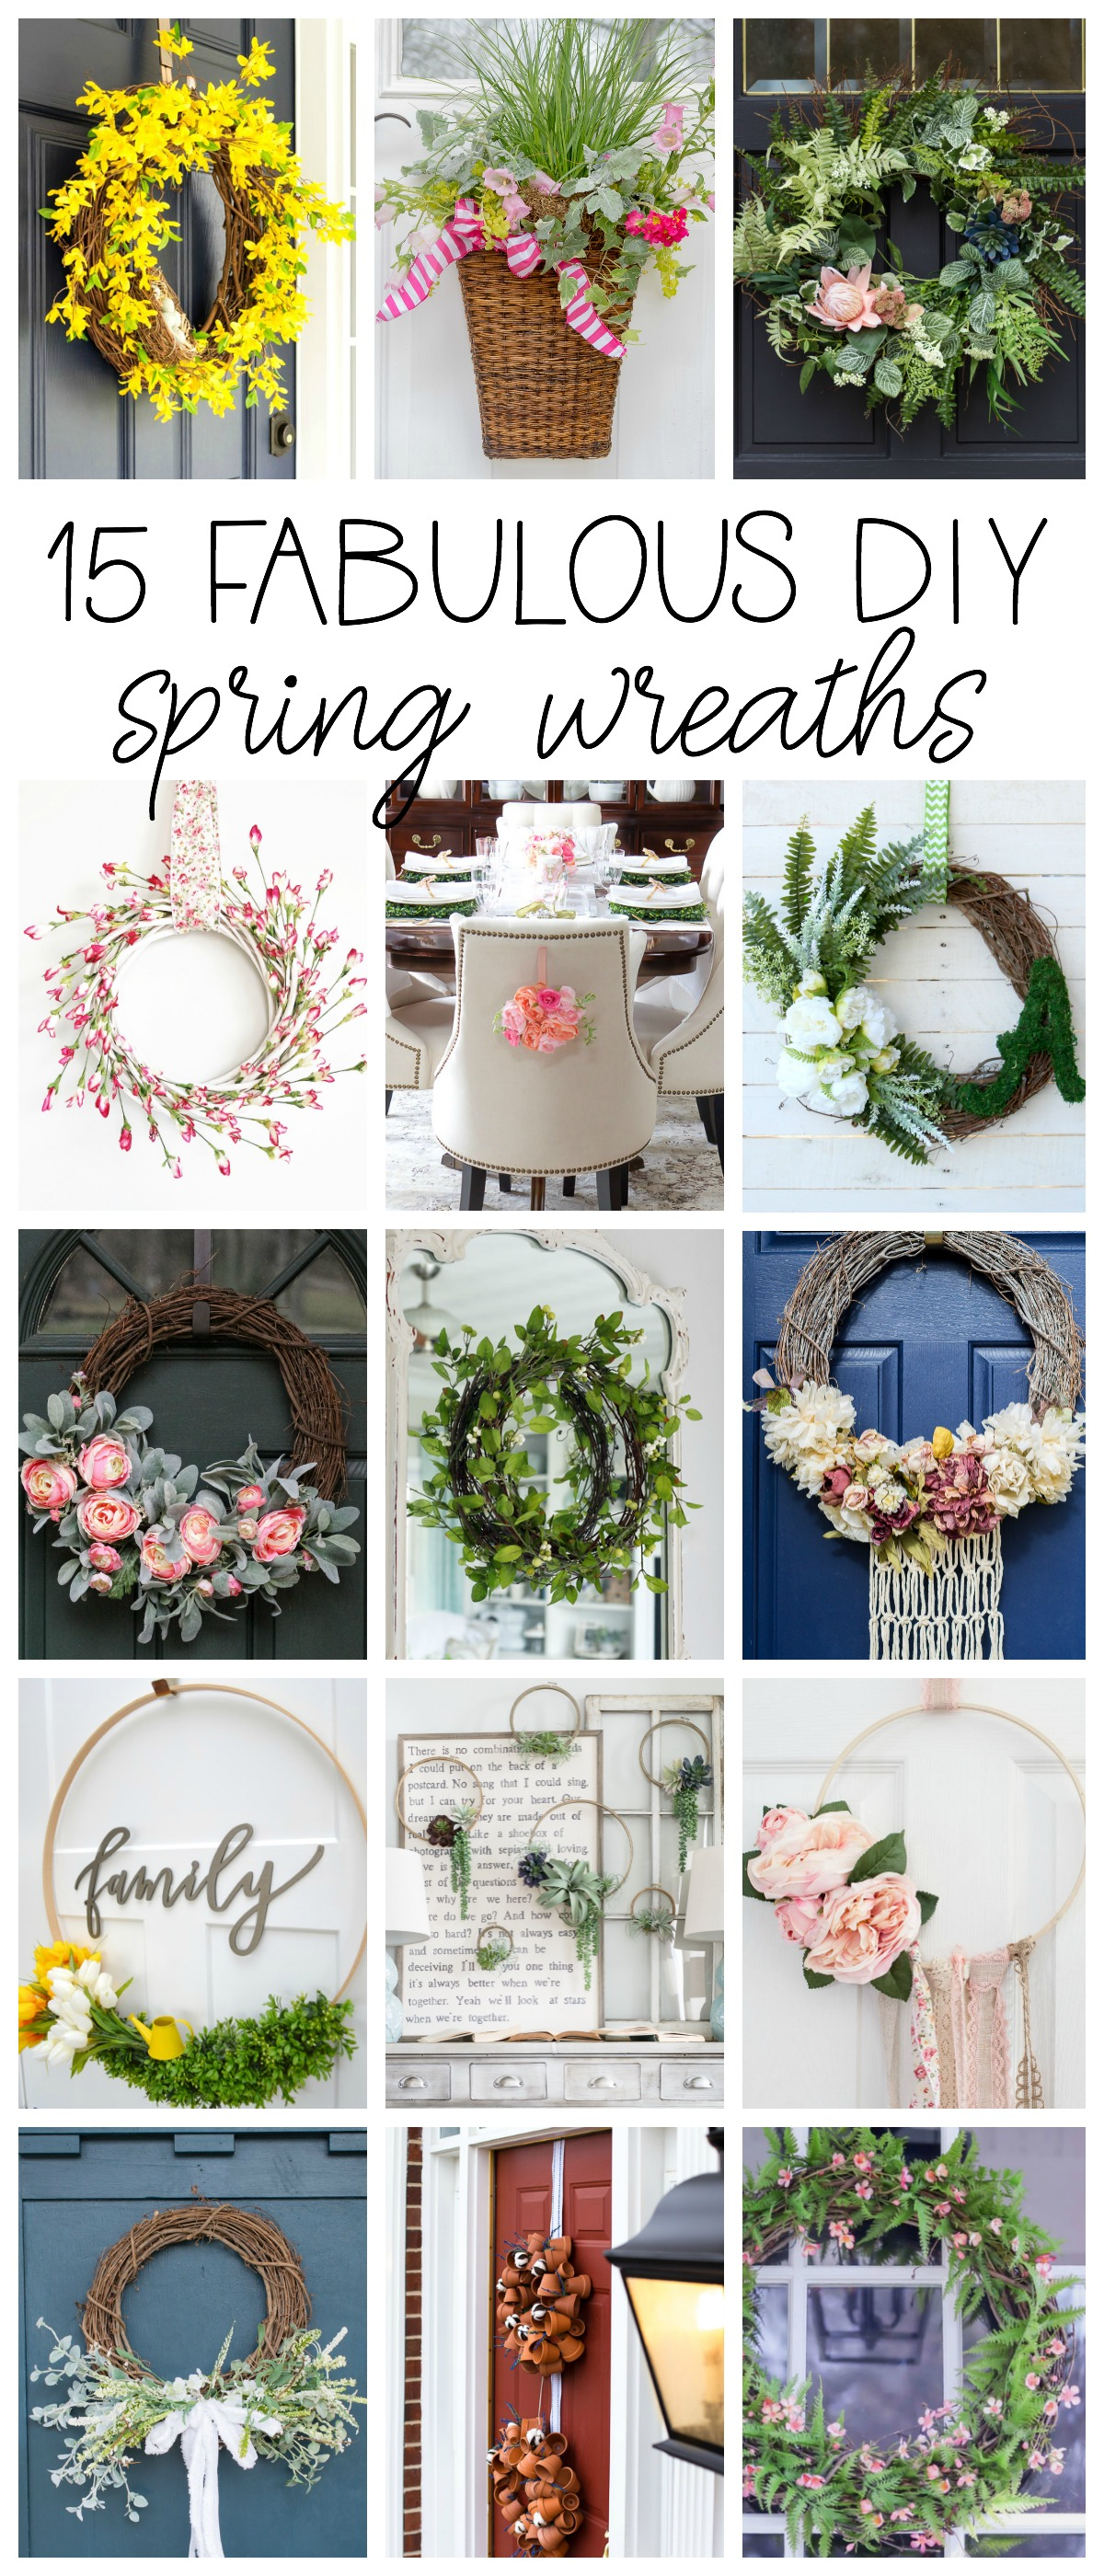 15 Fabulous DIY Wreaths for Spring!